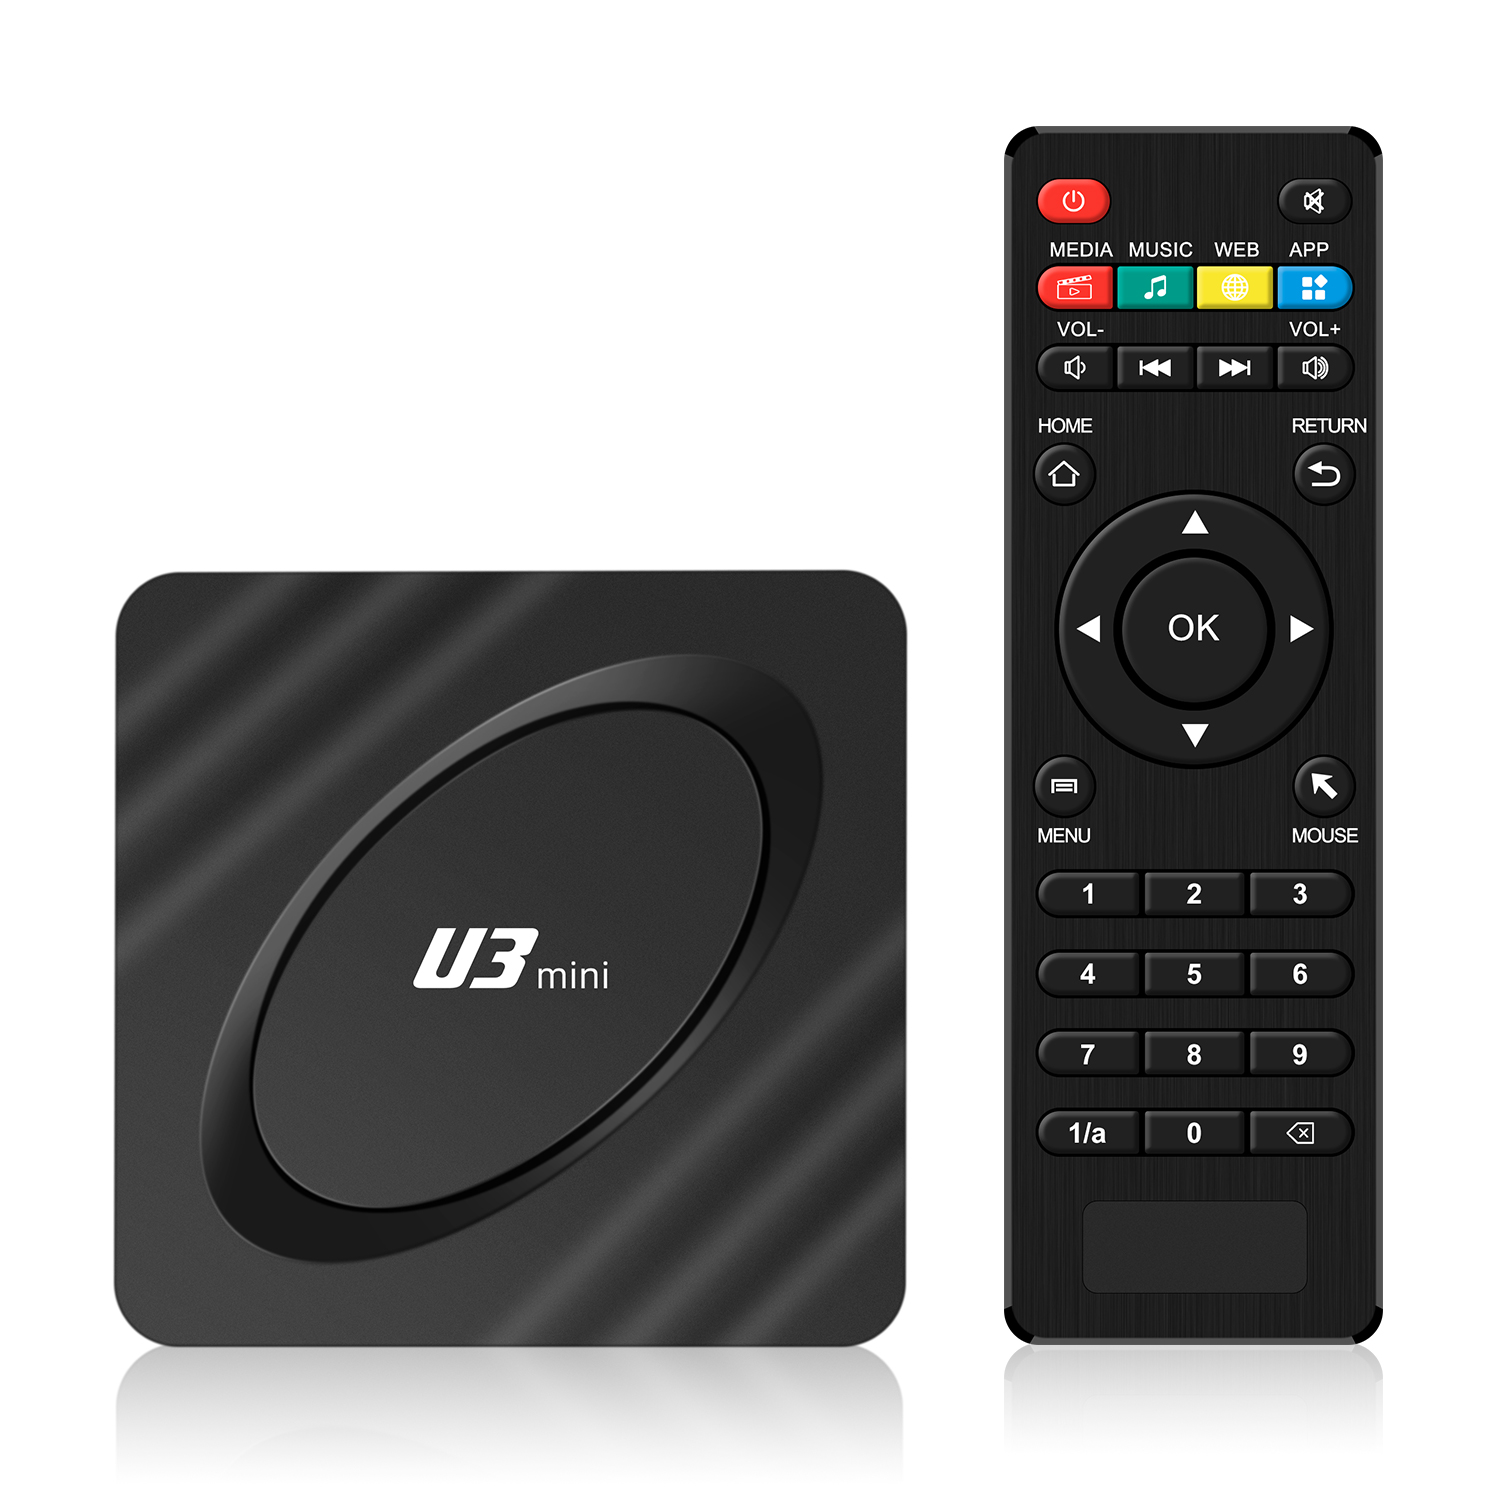 2020 New arrival U3 mini 2gb 16gb Amlogic S905W android 9.1 4k ott tv box?imageView2/1/w/400/h/300/q/80